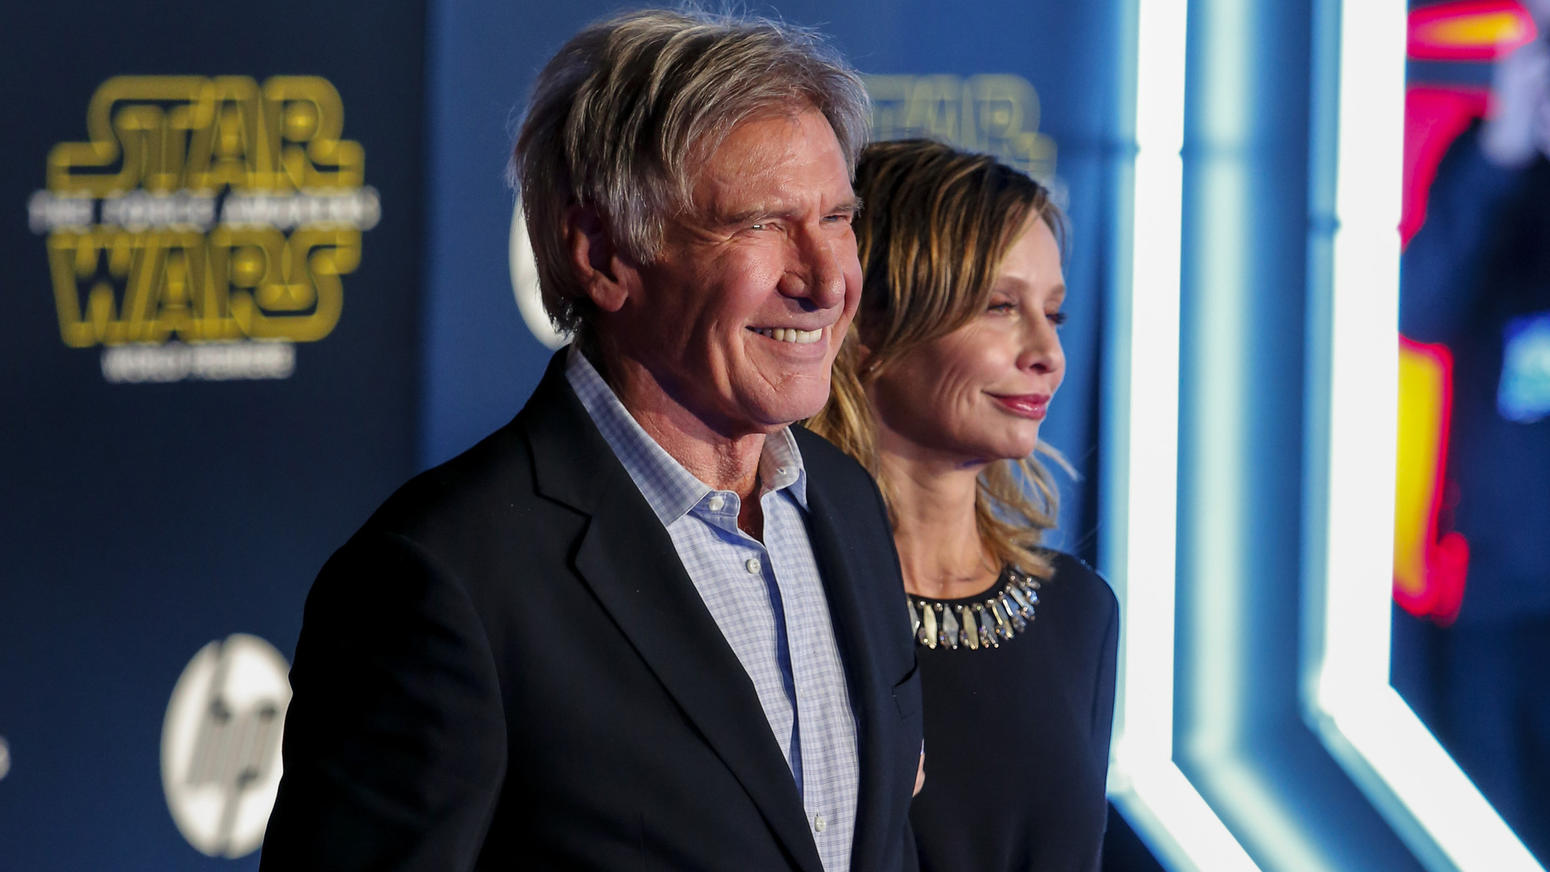 'Star Wars: The Force Awakens' arrivals